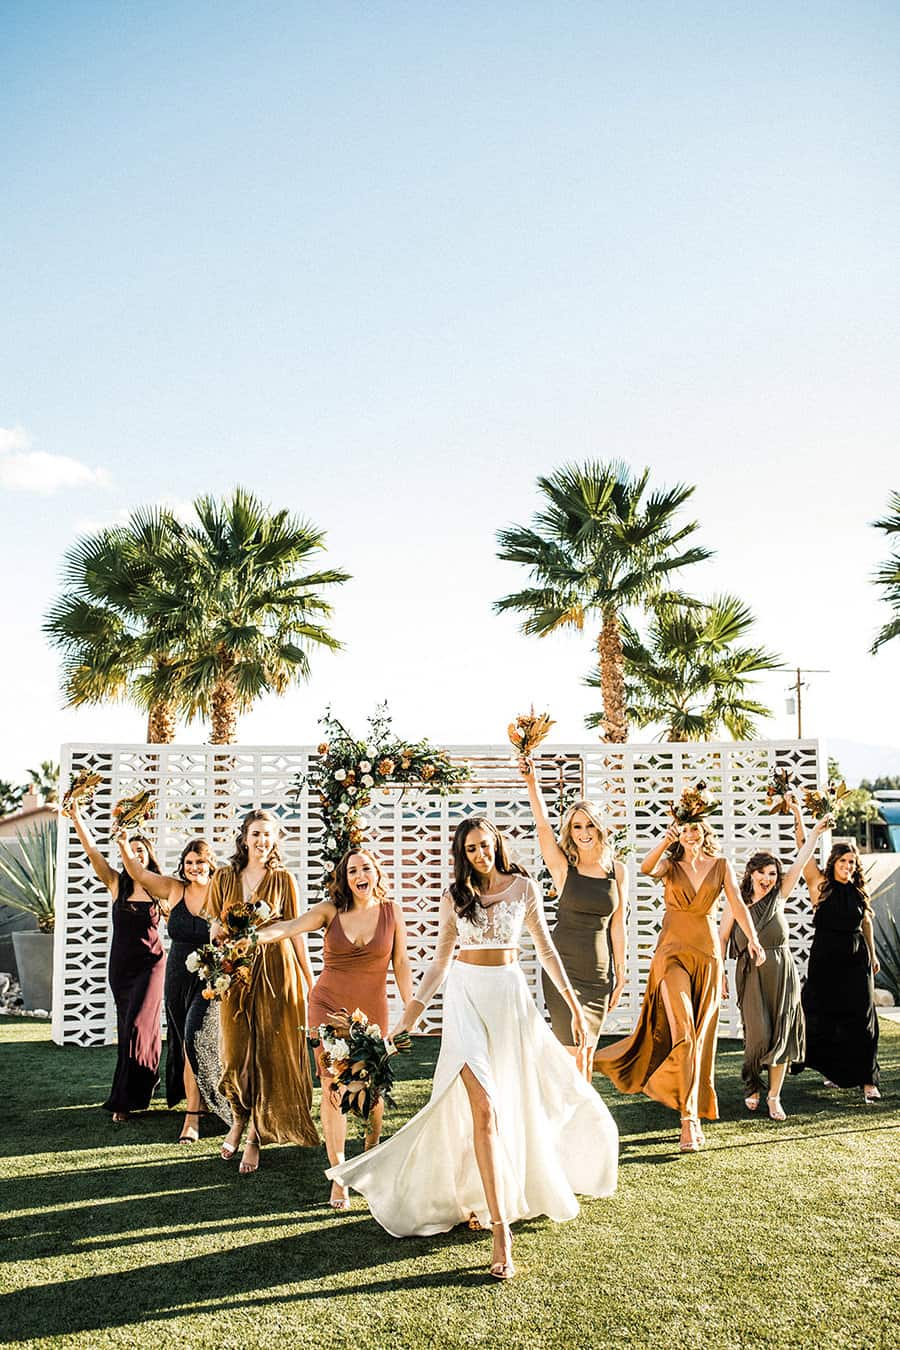 15 Epic Wedding Party Pictures You Definitely Want To Recreate